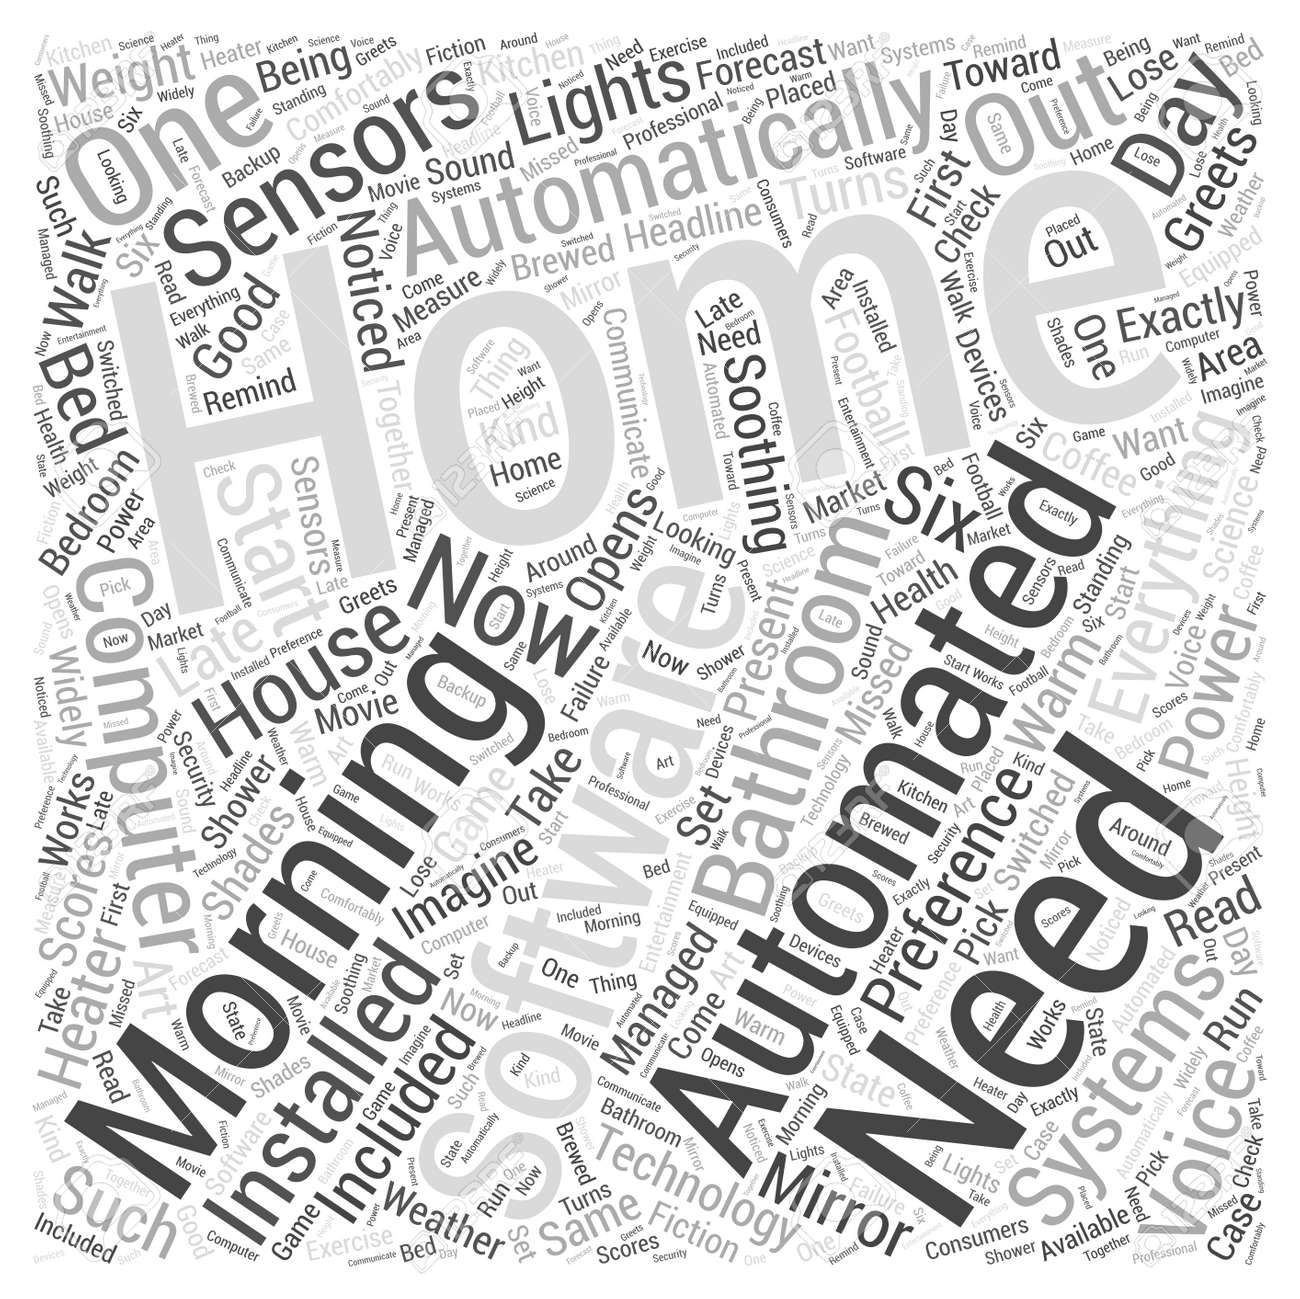 home automation software word cloud concept royalty free cliparts